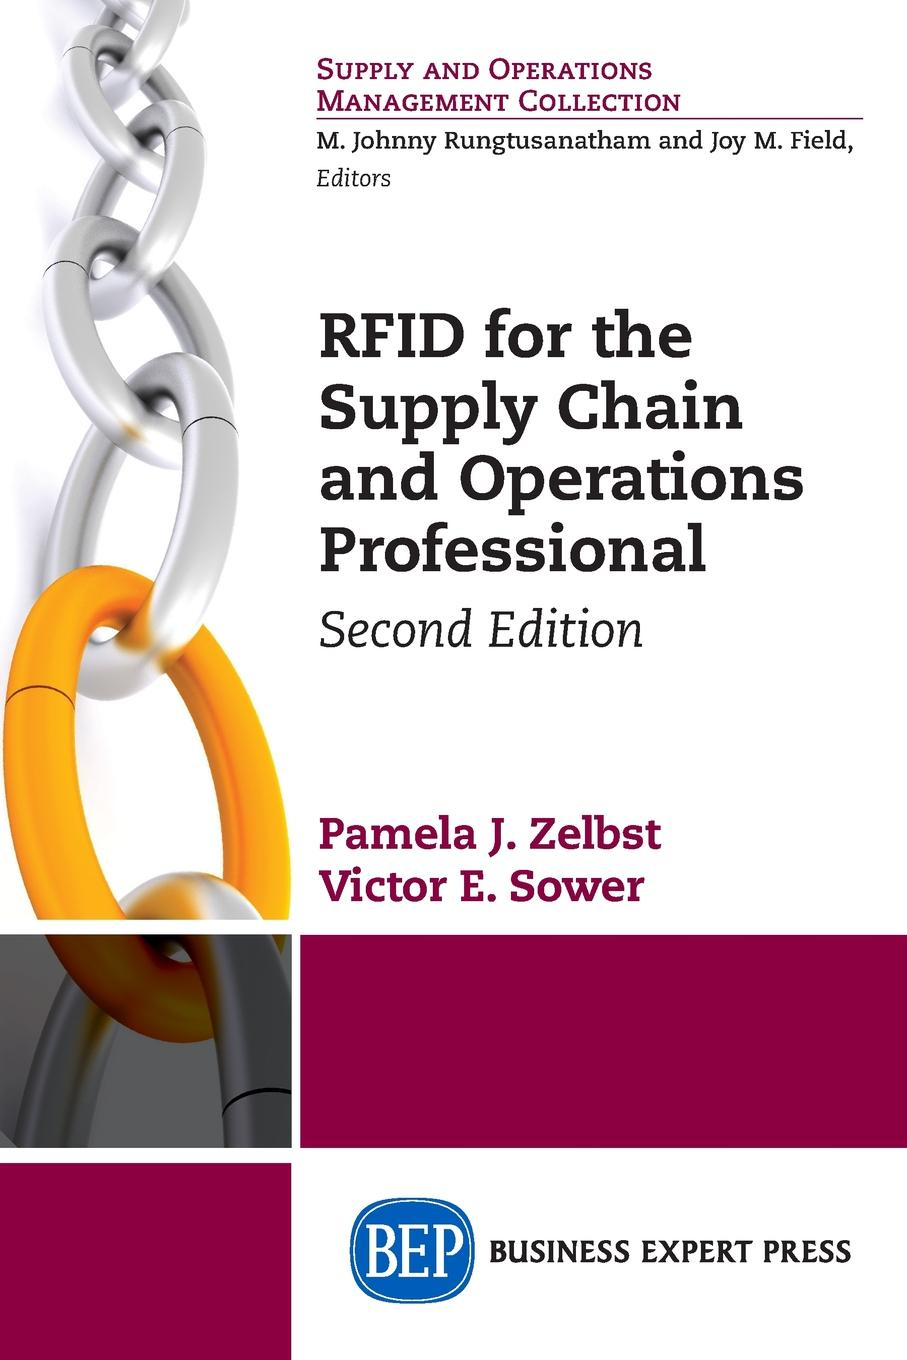 Pamela Zelbst, Victor Sower RFID for the Supply Chain and Operations Professional, Second Edition 5pcs rfid id key card tags keyfobs token tag keychain 125khz tk4100